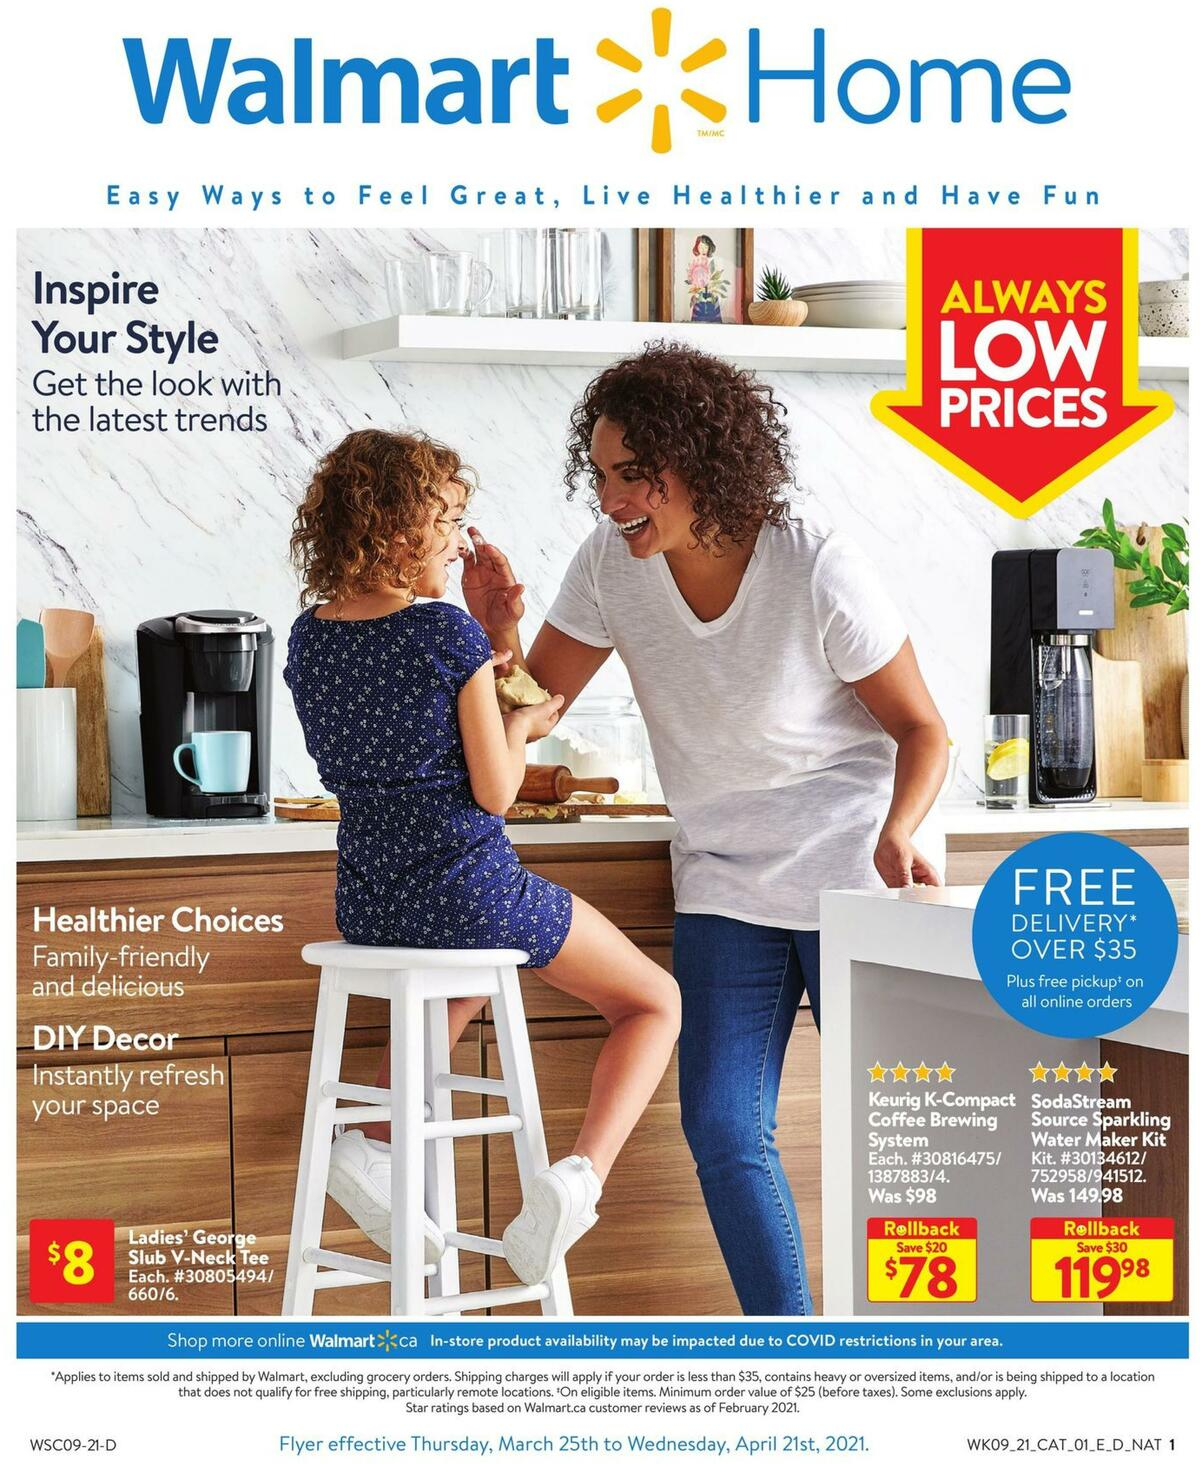 Walmart Home Flyer from March 25